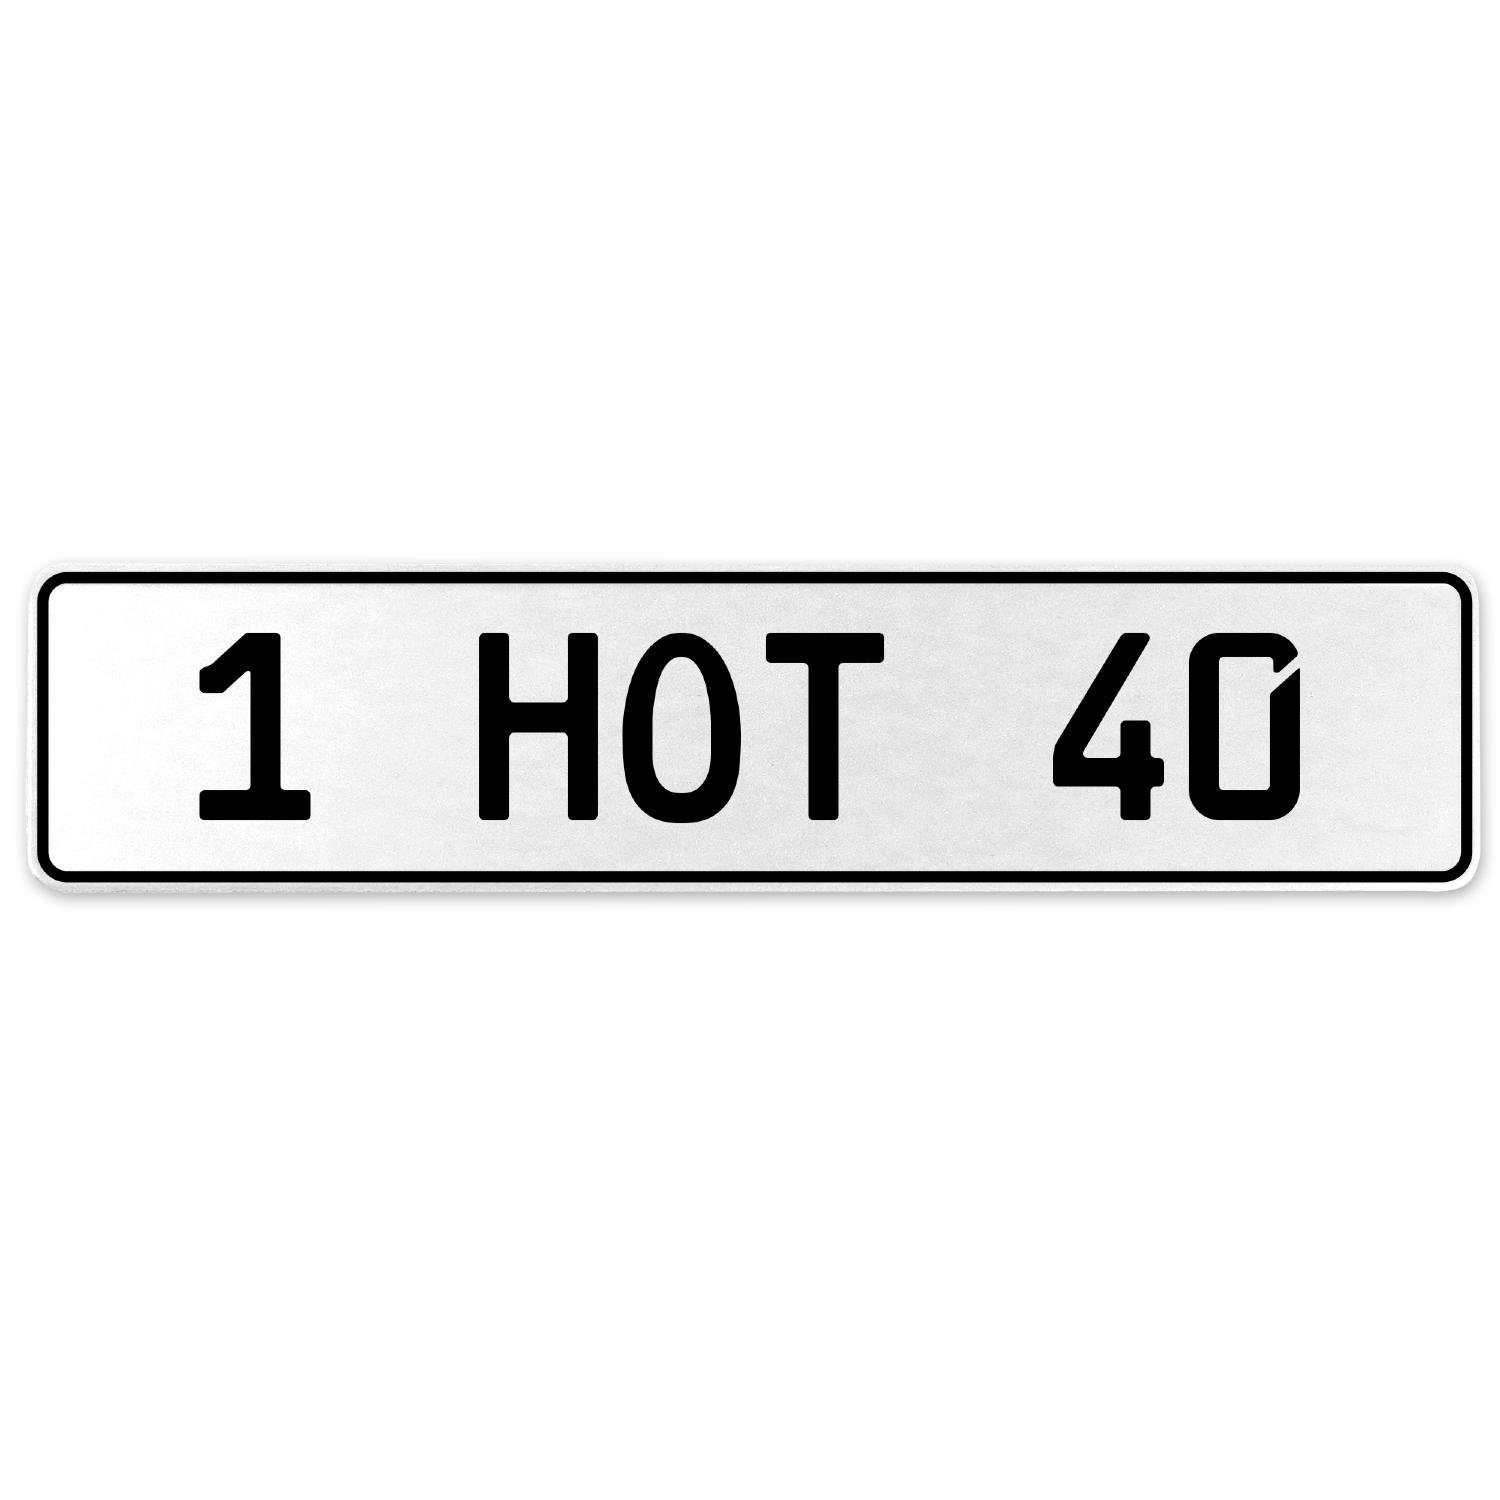 Vintage Parts 553548 1 HOT 40 White Stamped Aluminum European License Plate